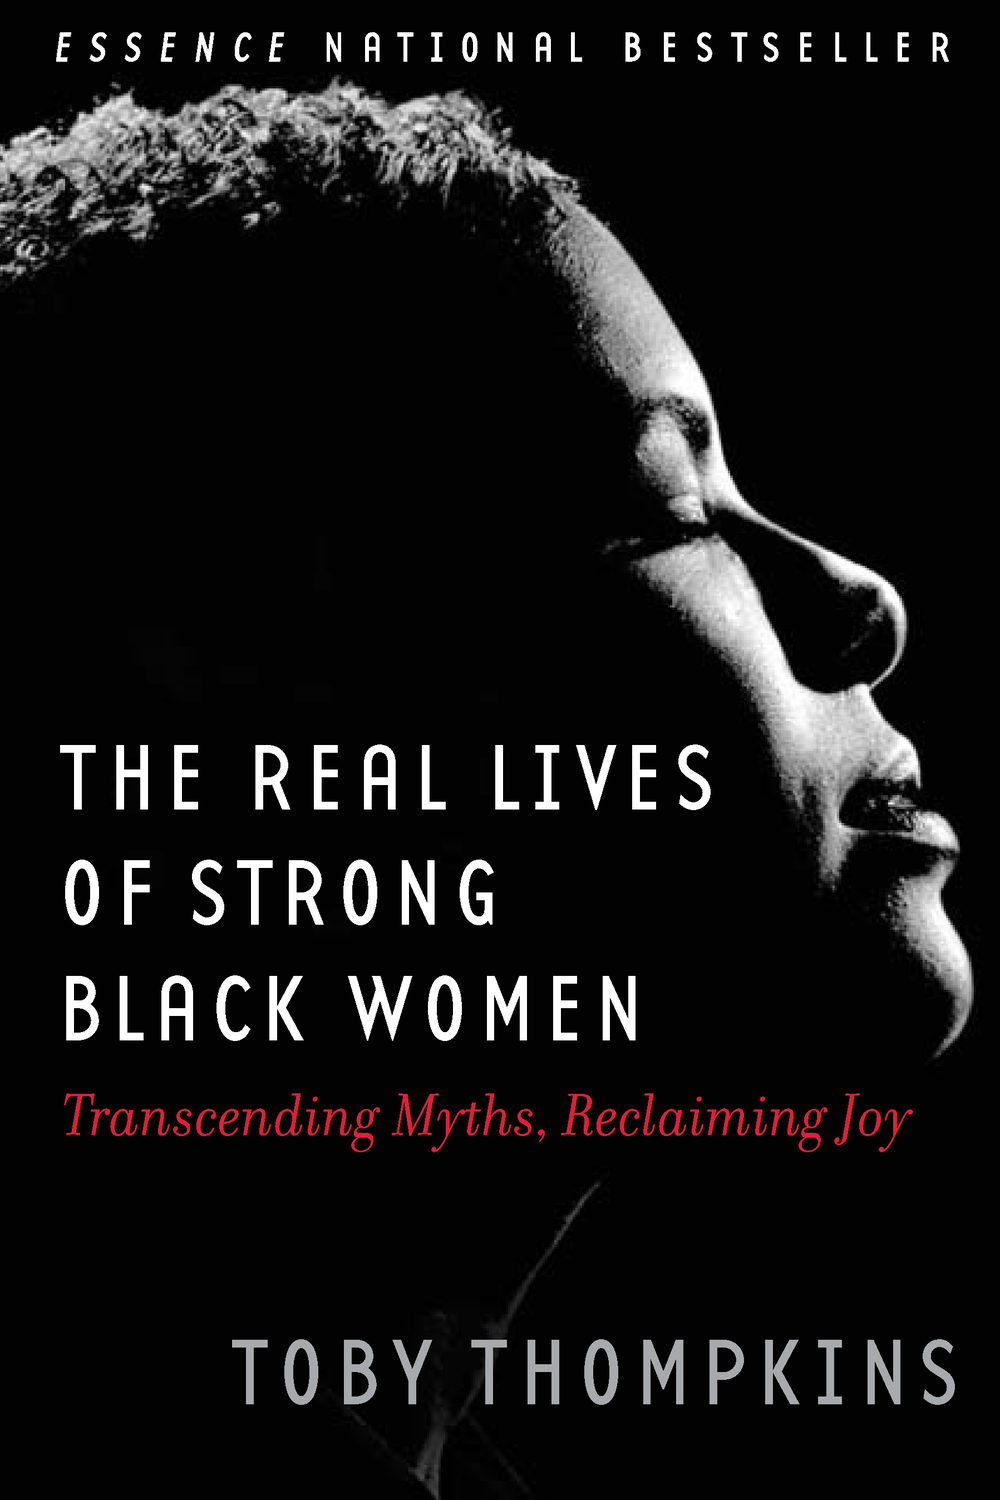 Real Lives of Strong Black Women_Page_01.png